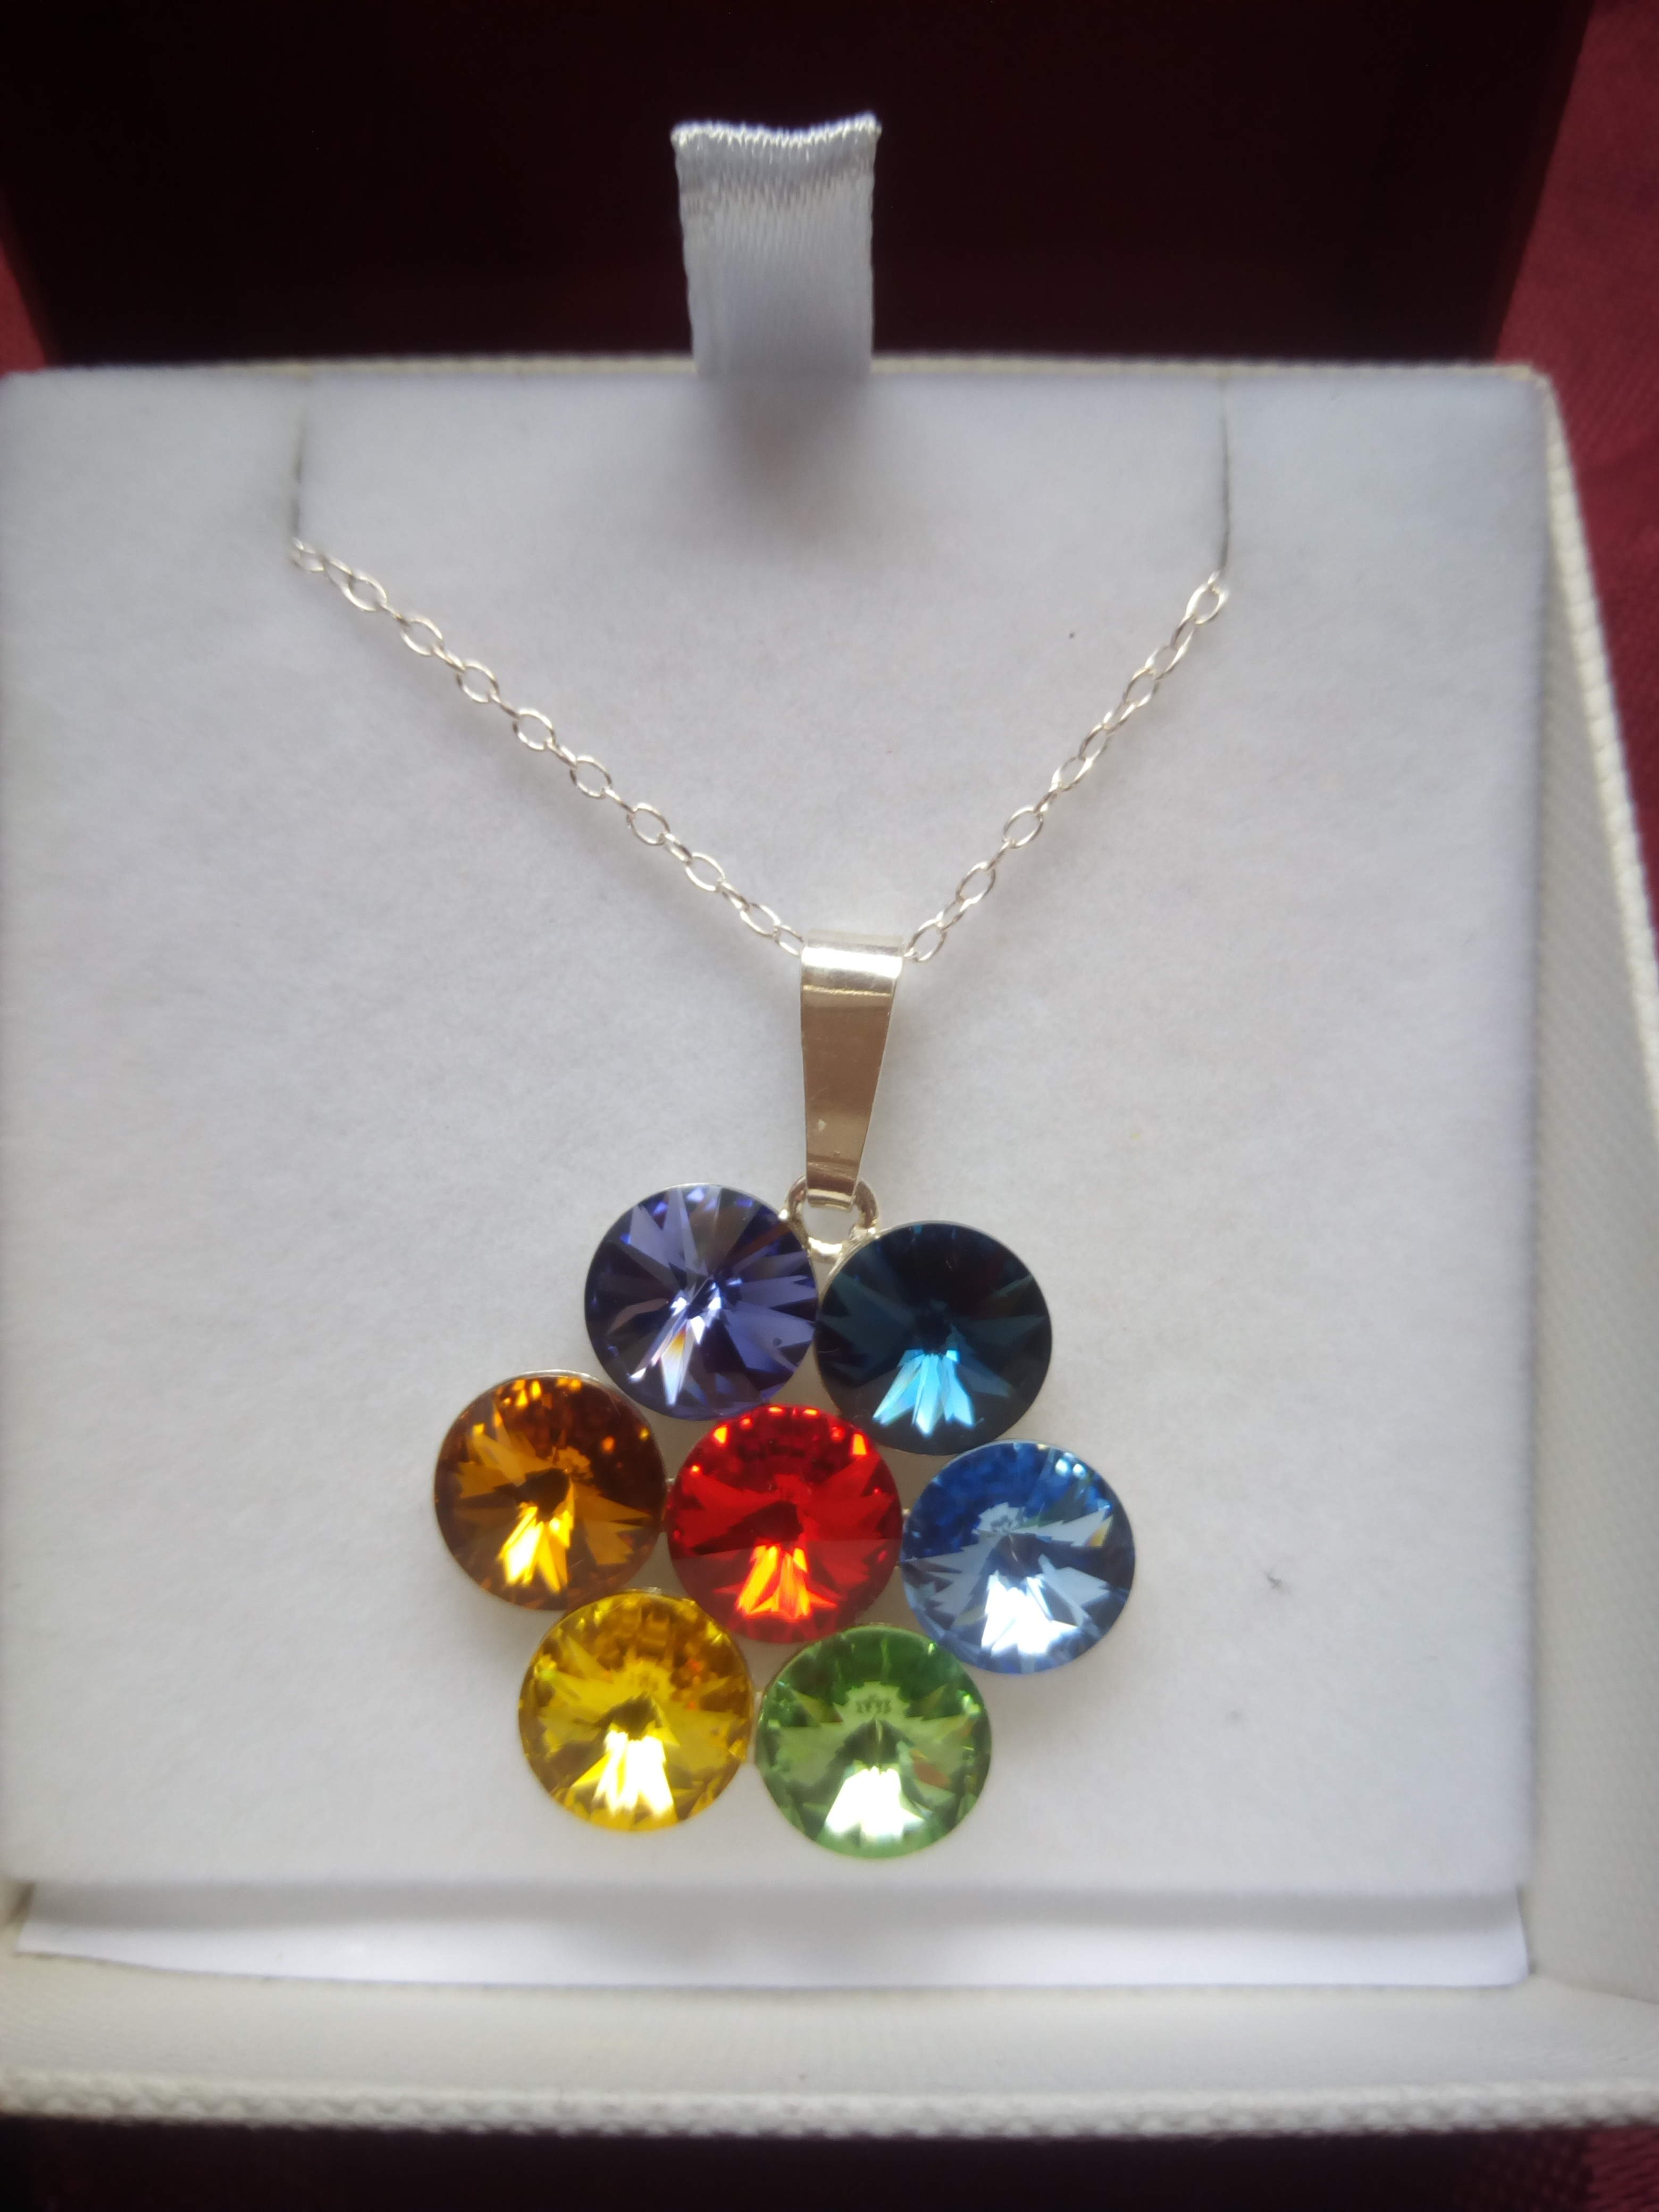 Colourful Sterling Silver pendant